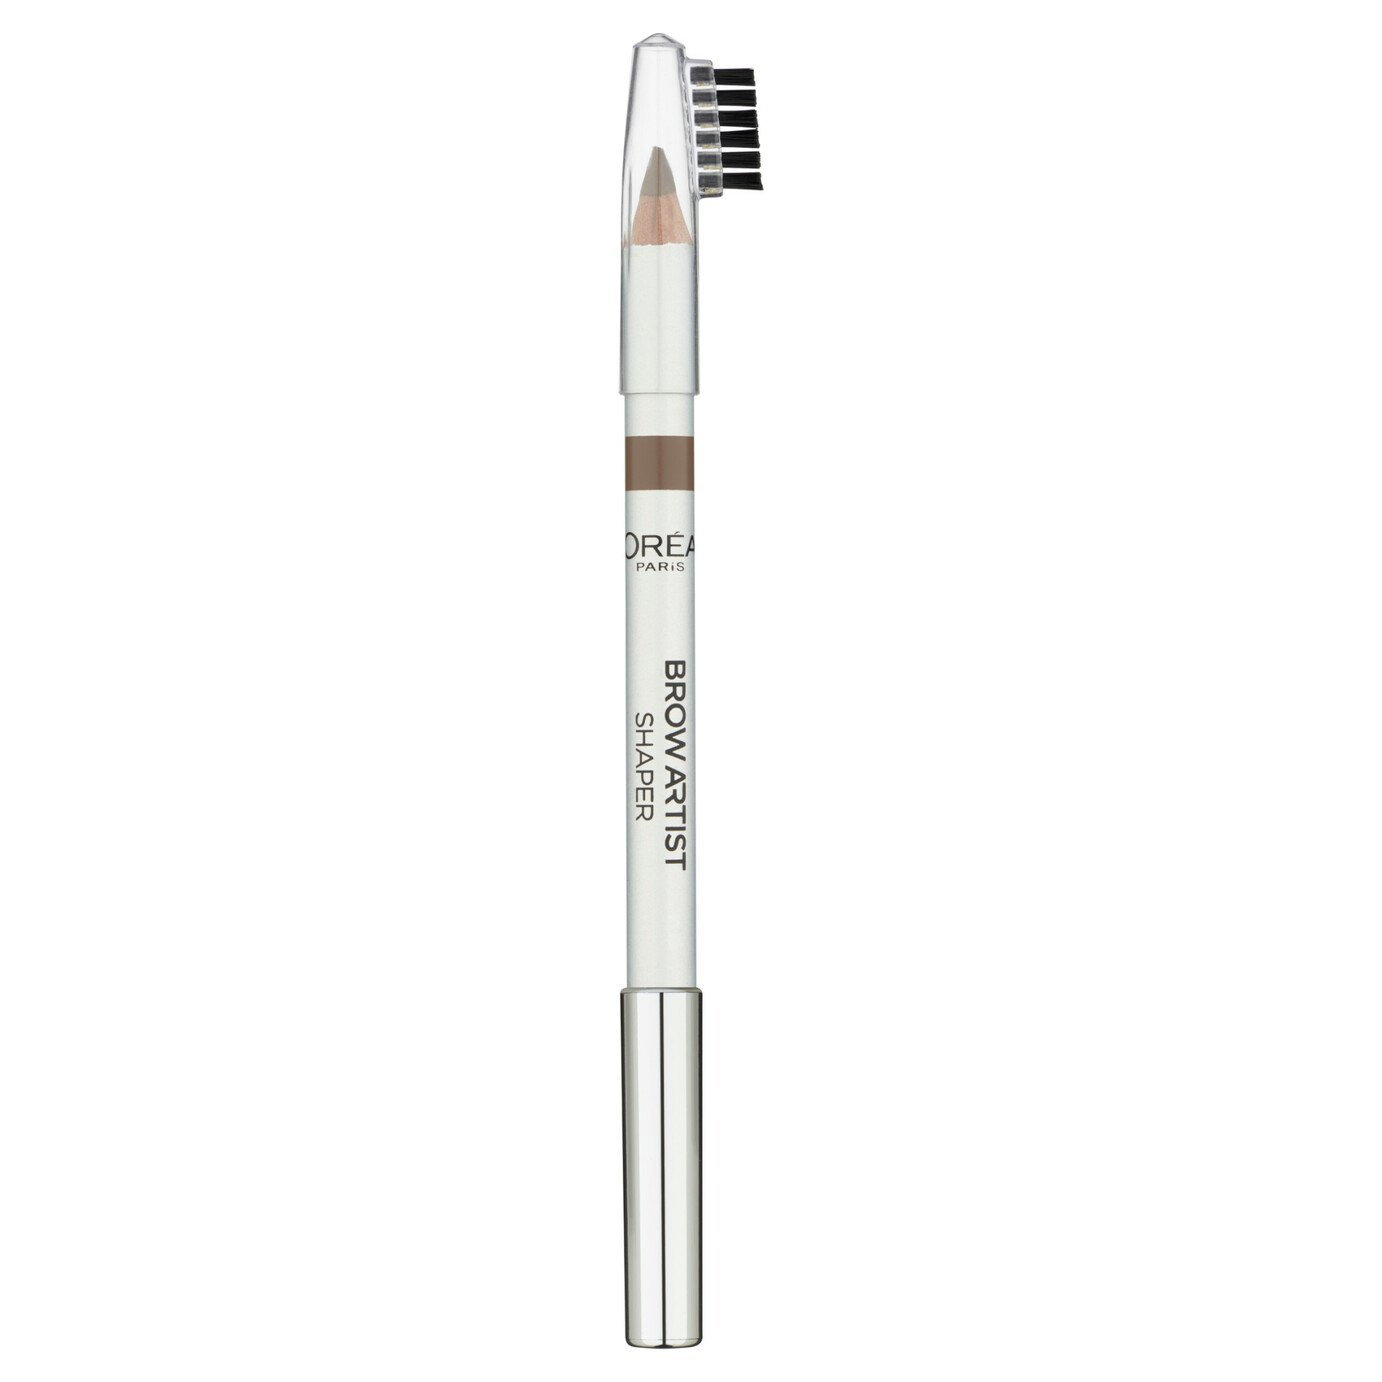 L'Oreal Brow Artist Eyebrow Pencil - 02 Blonde